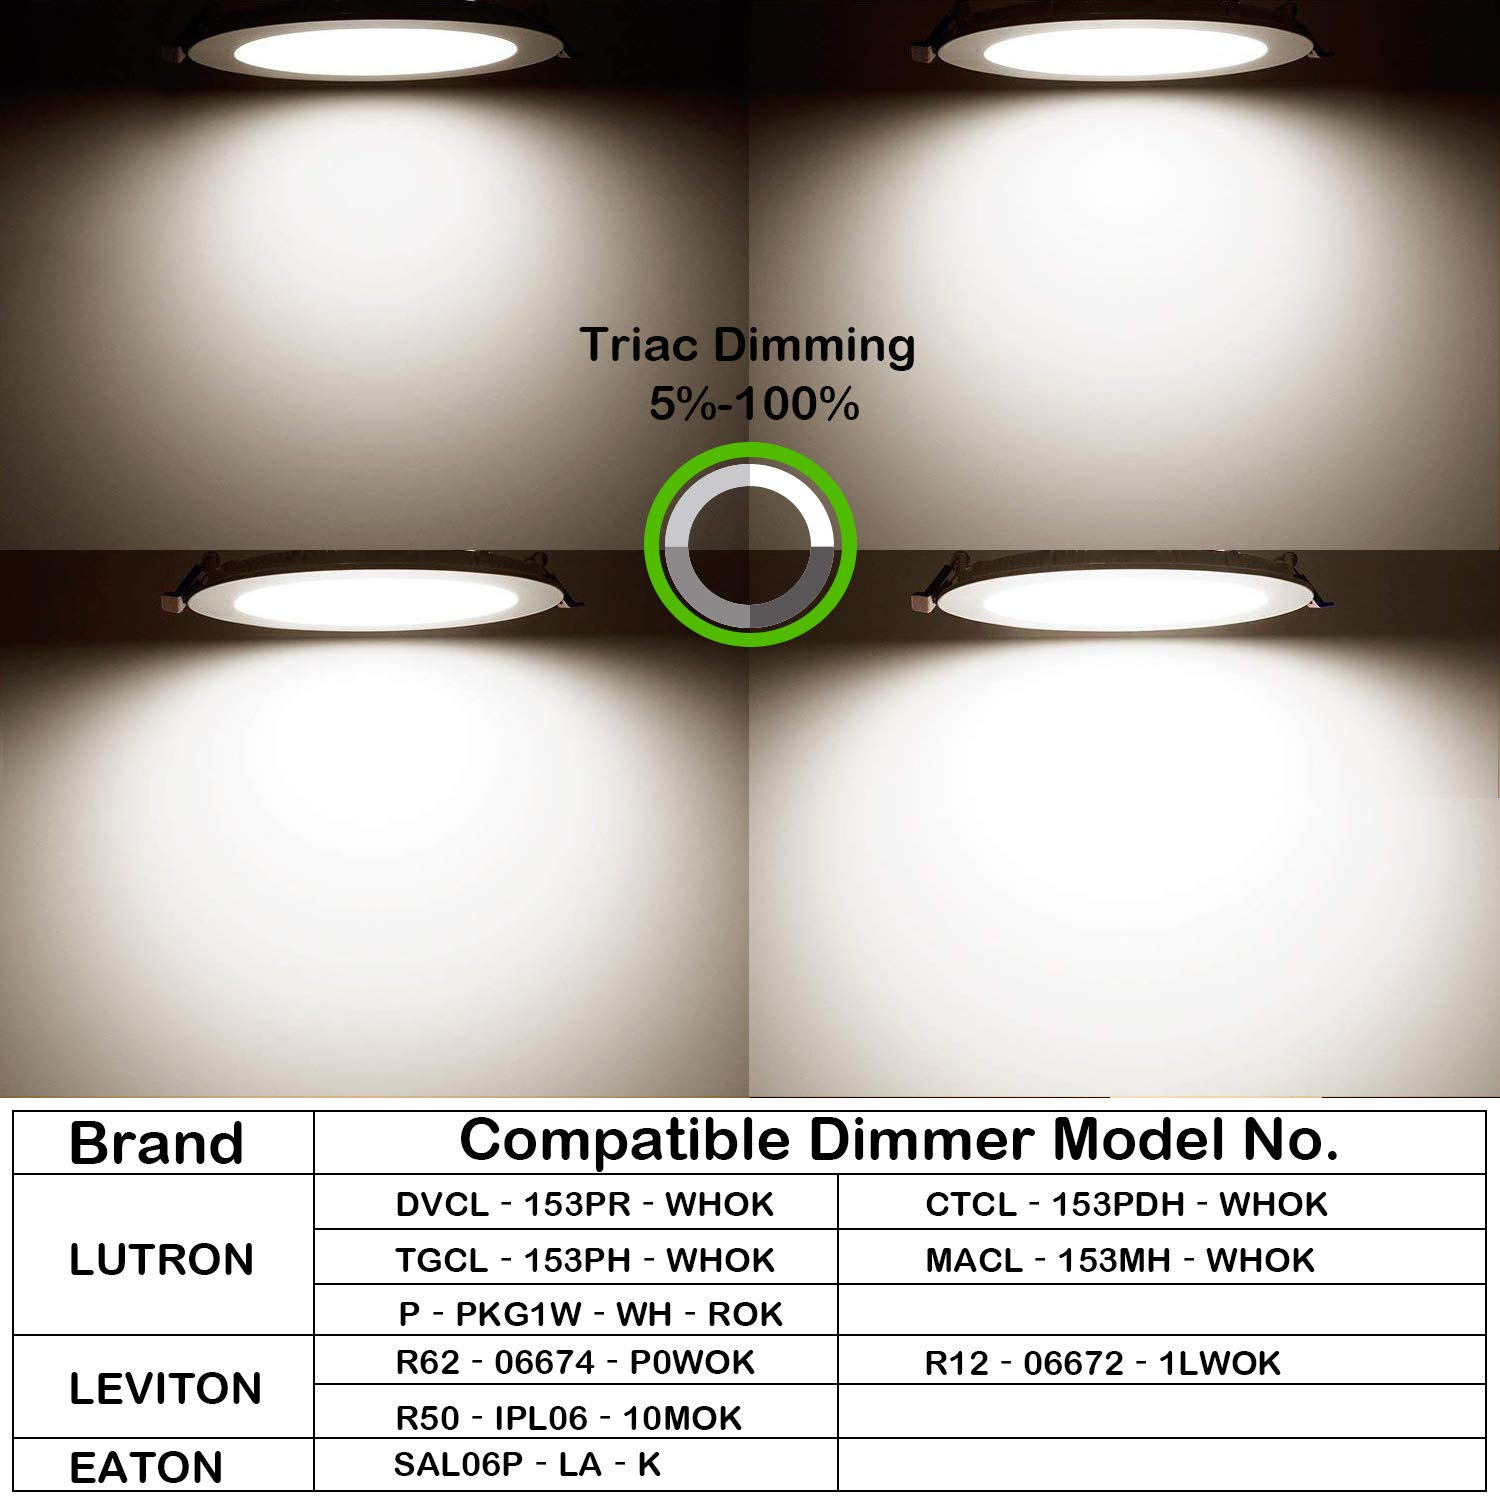 Hykolity 12 Pack 10W 4 Inch LED Slim Recessed Ceiling Light, 800lm, CRI90, 4000K Neutral White, Low Profile Downlight with Junction Box Dimmable, ETL& Energy Star Listed,Title 24 Compliant by hykolity (Image #4)